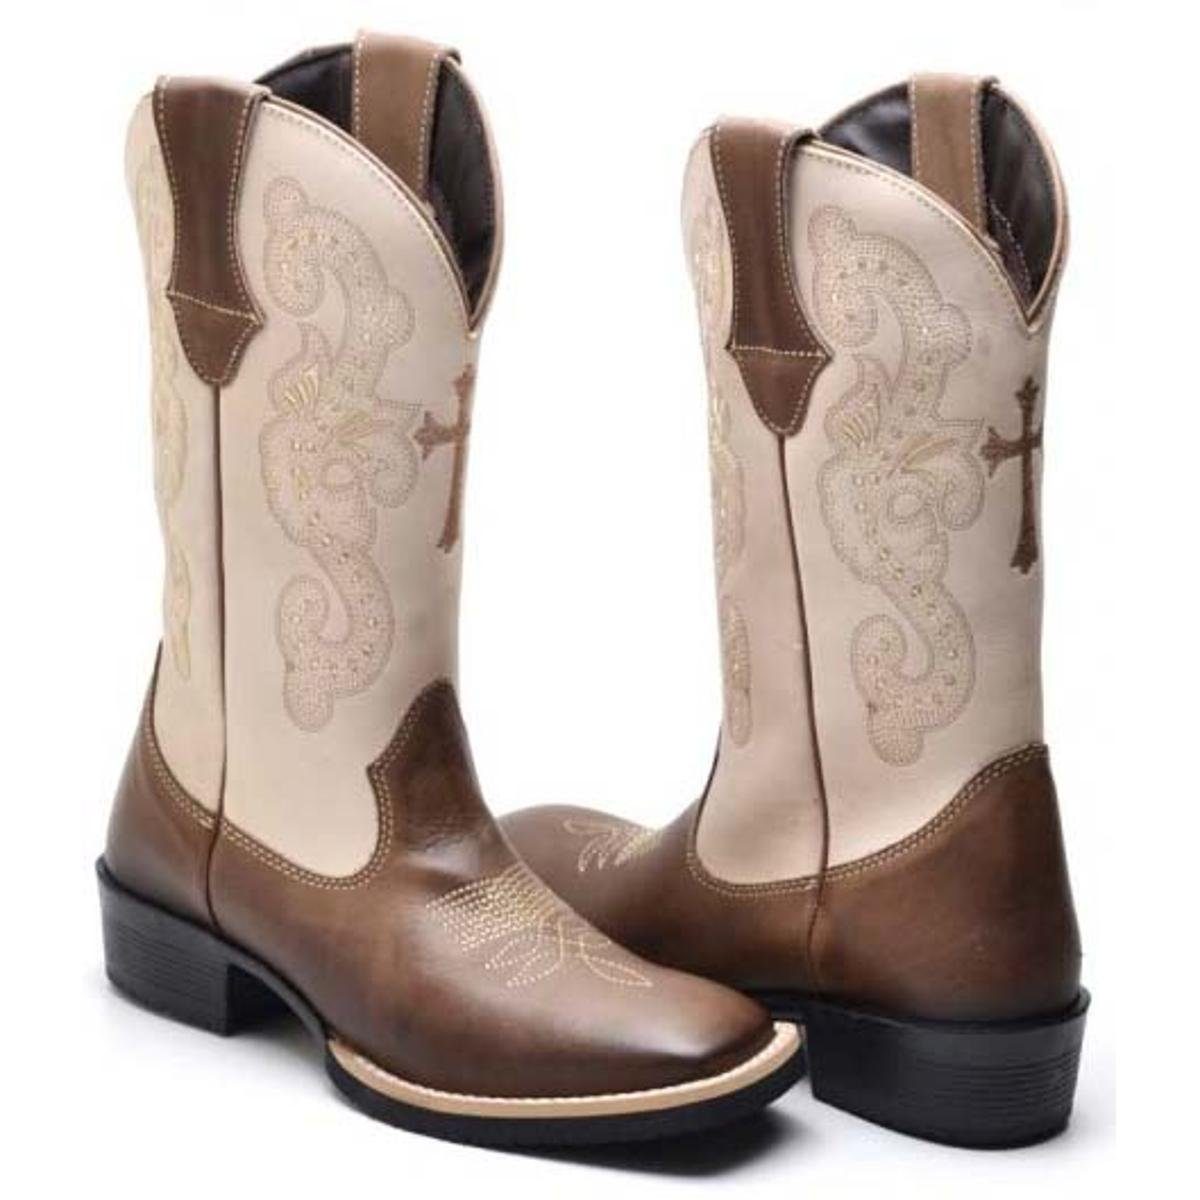 Bota Texana Country Feminina  Bota Texana Country Feminina. Bota Texana  Country Feminina - Bege+Marrom c4da6e94eb6